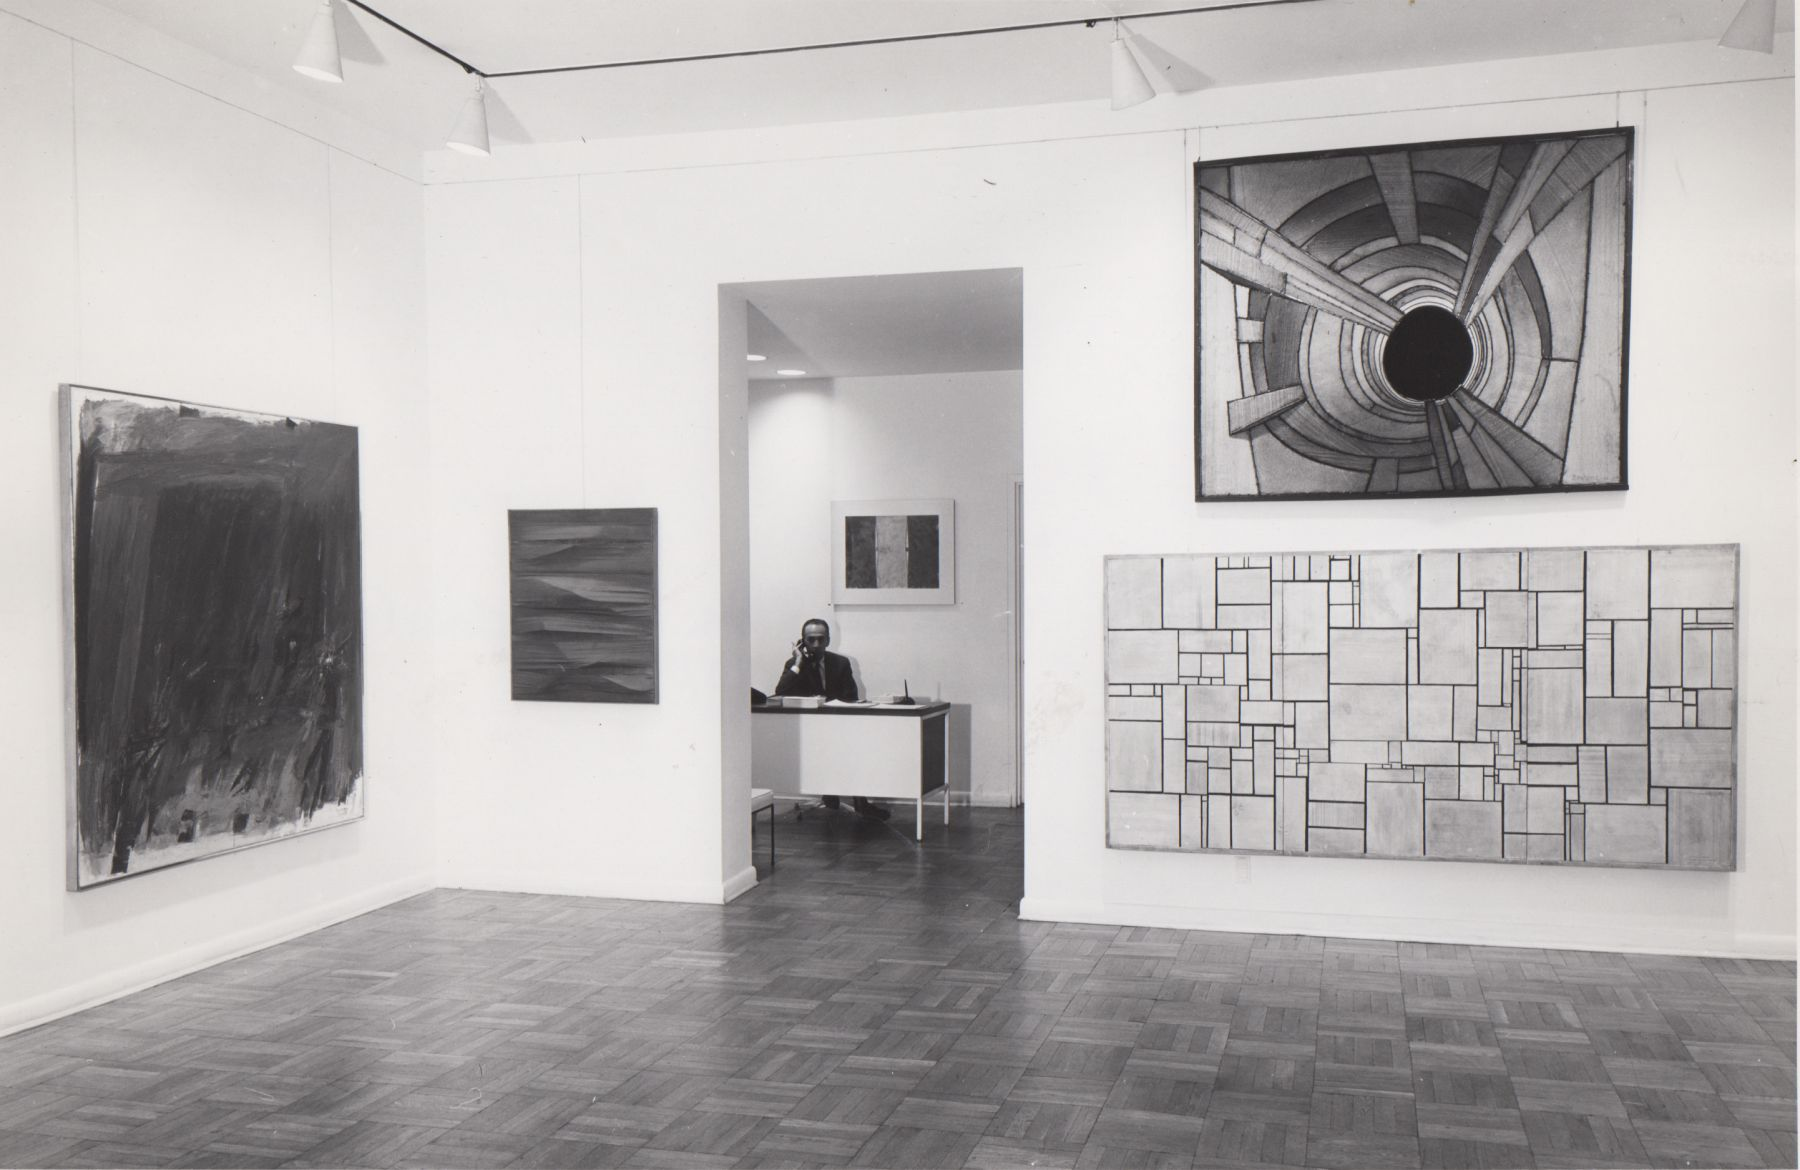 Installation view, Group Exhibition: Summary 1959 – 1960, 4 EAST 77.